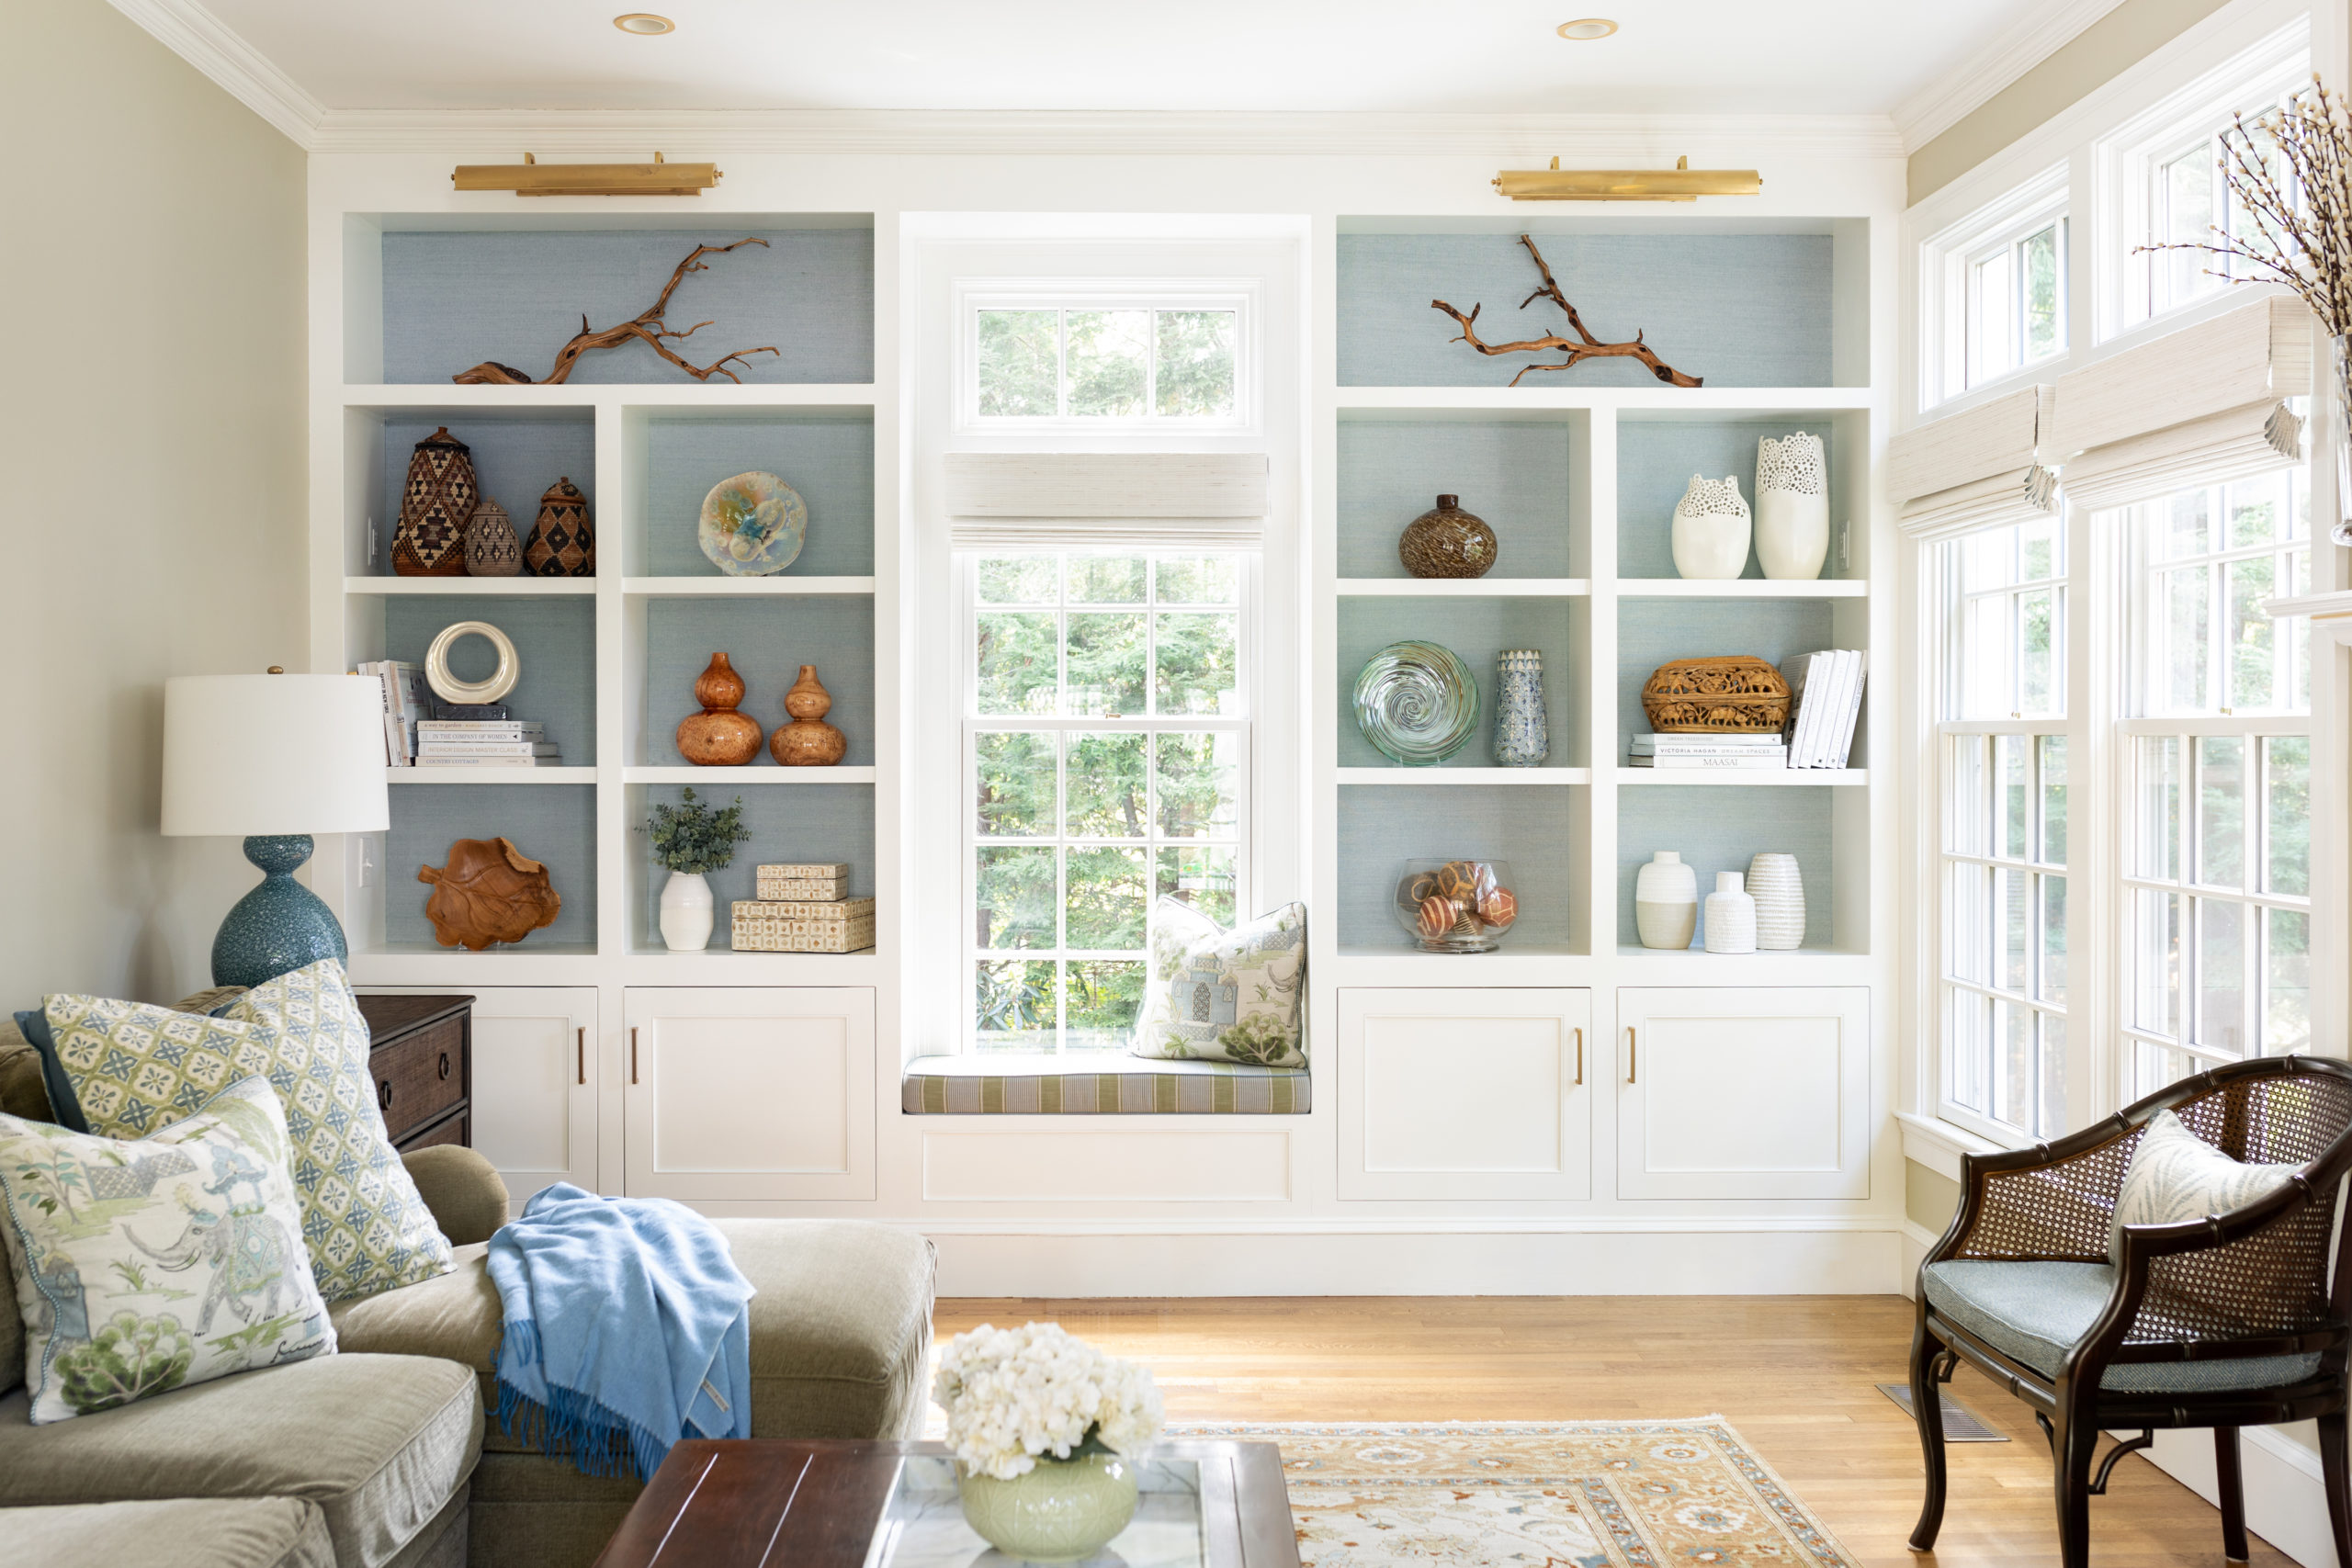 Nook wall in a sun-drenched family roon